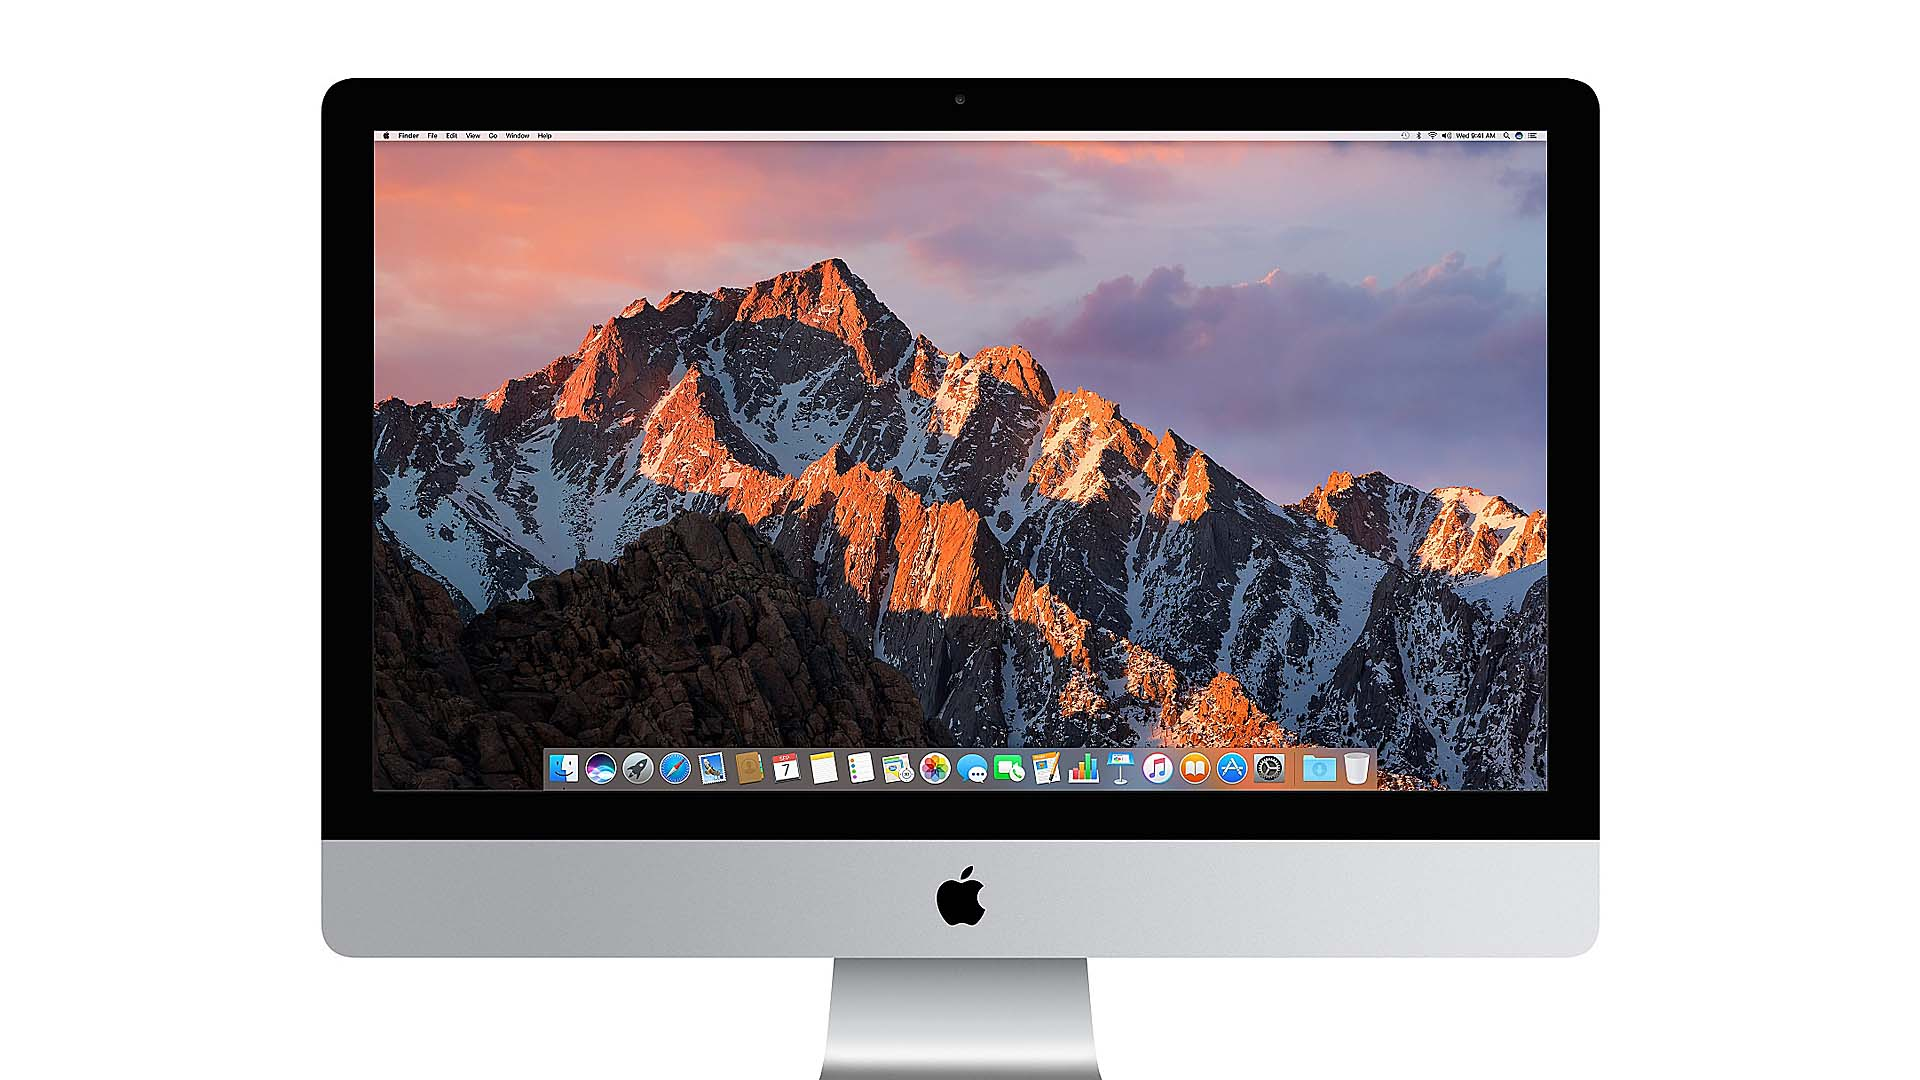 Can You Build a PC Equivalent to the Apple iMac?